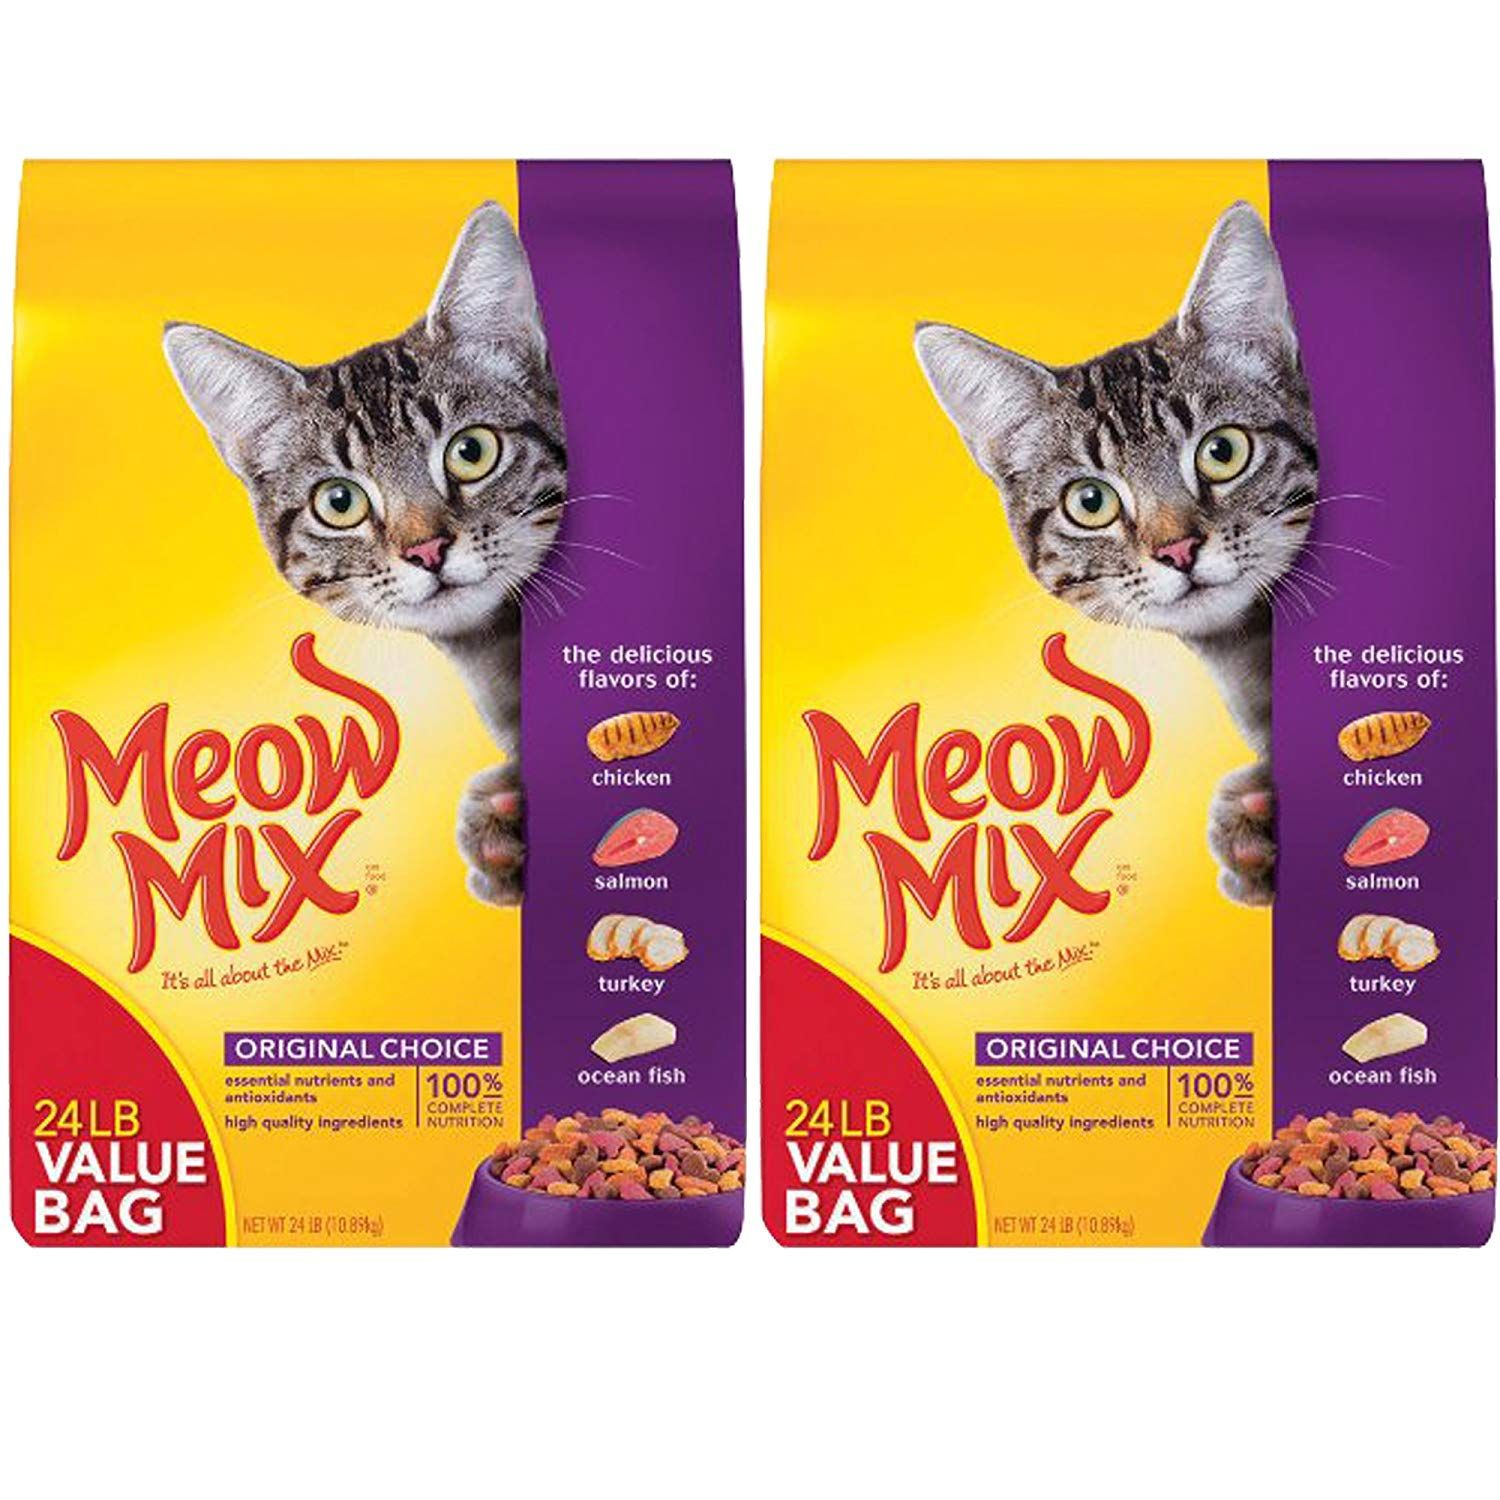 Meow Mix Original Extra Large 24 Pound Bag 2 Pack Click On The Image For Additional Details This Is An Affiliate Link In 2020 Diy Cat Food Cat Food Cat Diet